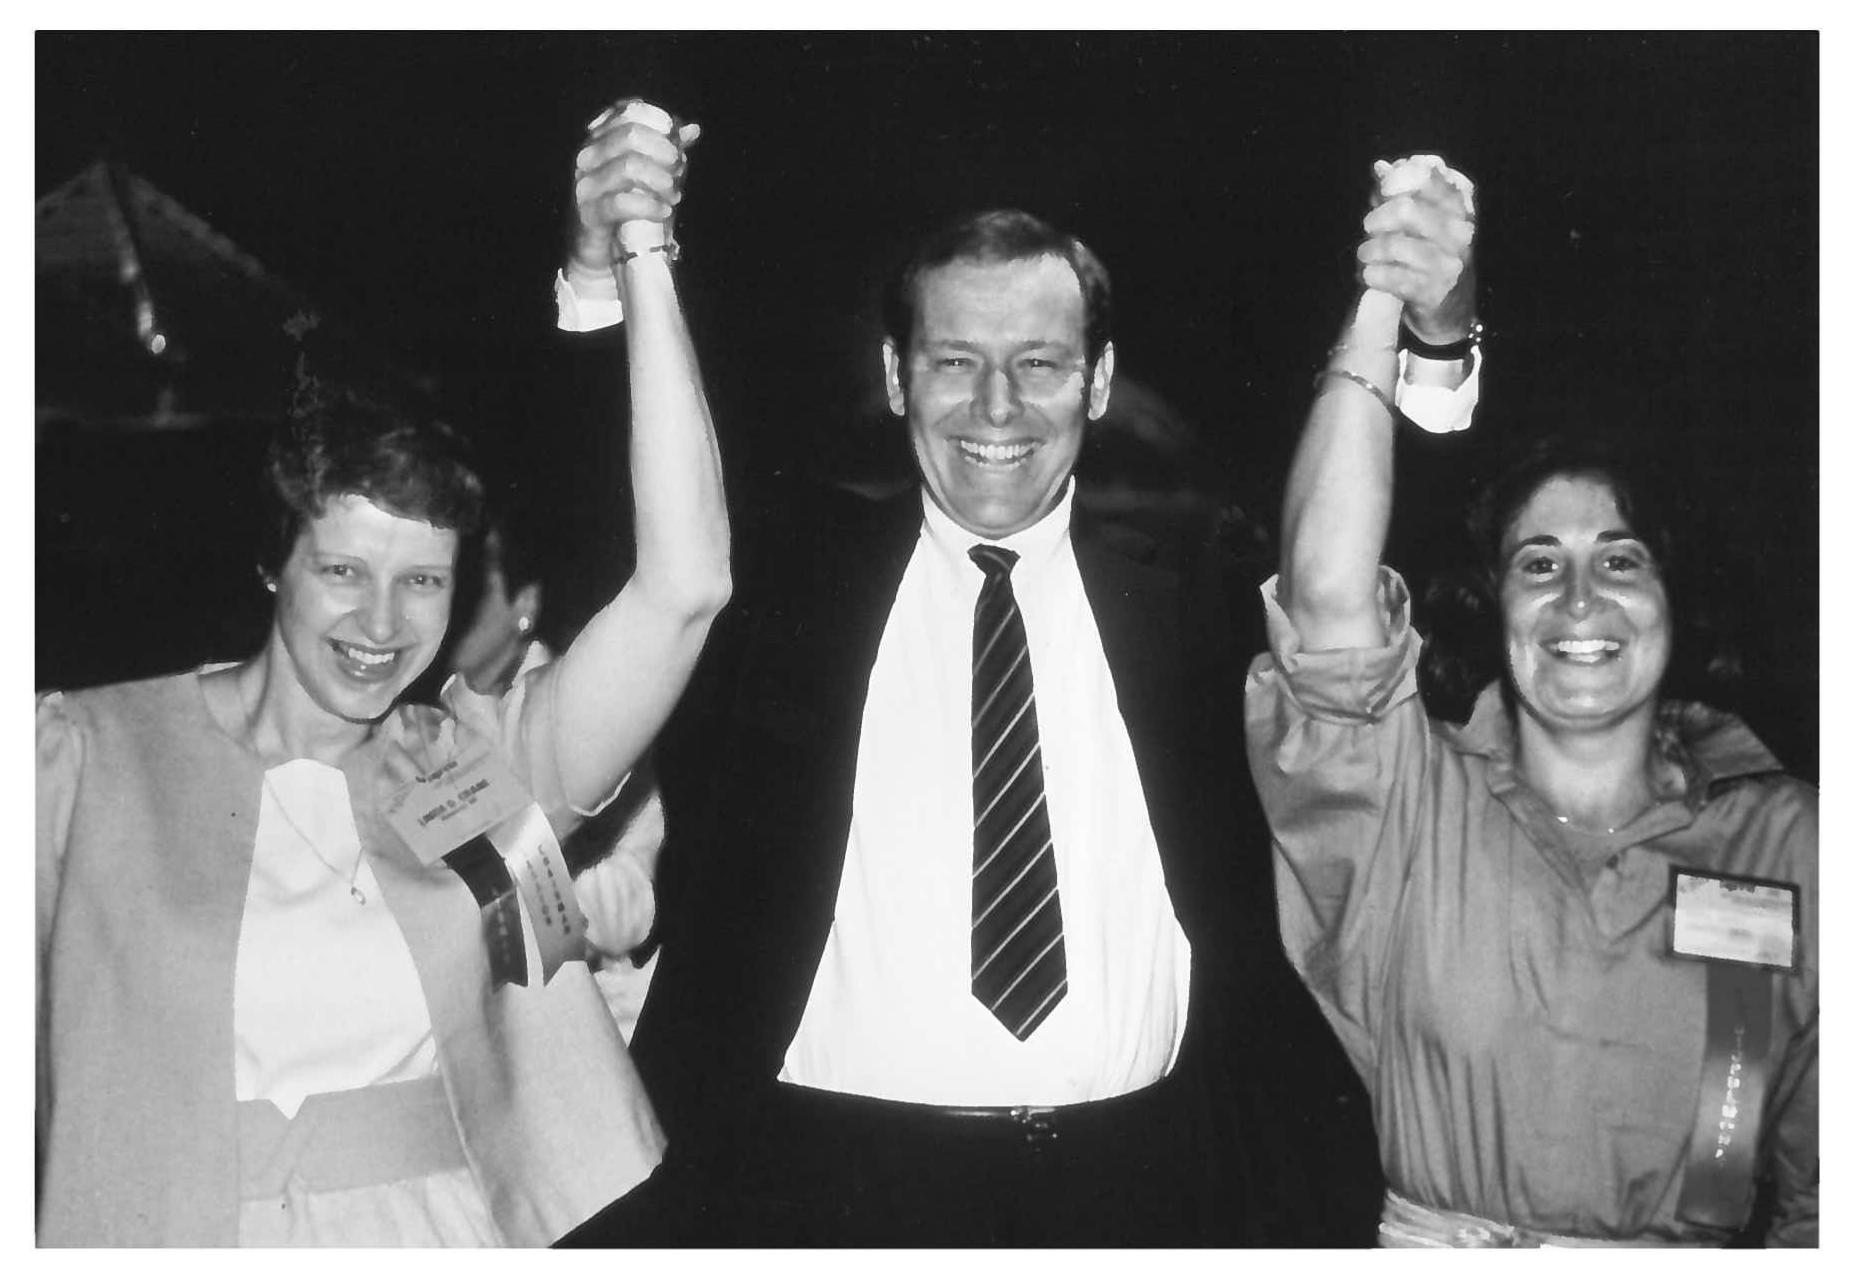 In February 1985, three physical therapists celebrate receiving the first advanced specialist certifications awarded. Left to right: Linda Crane; Scot Irwin; and Meryl Cohen. All three earned specialist certifications in cardiopulmonary physical therapy.